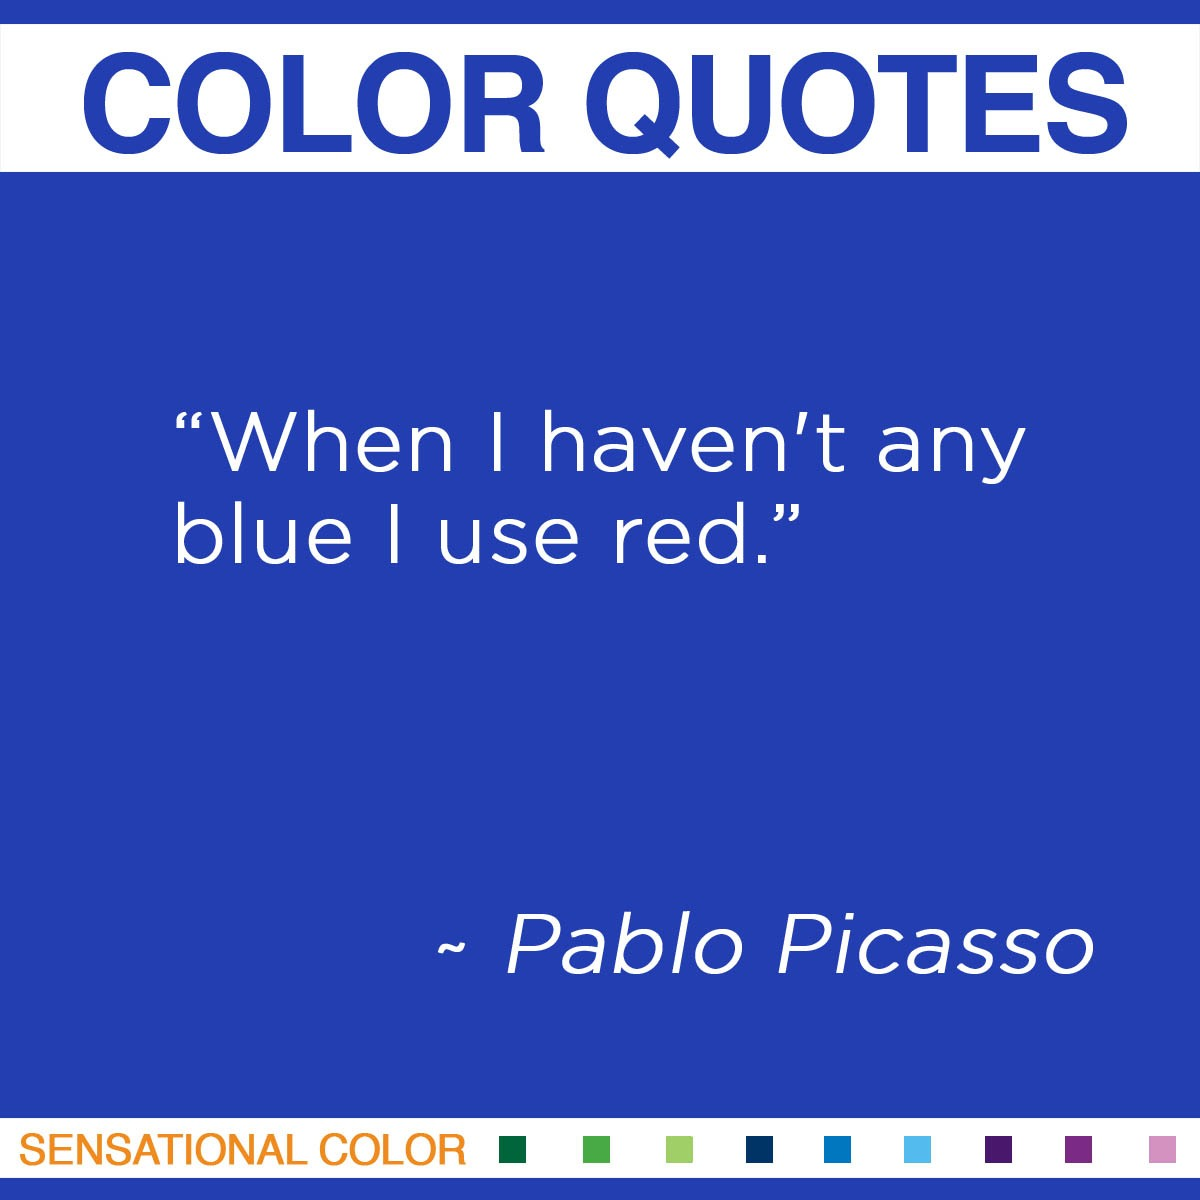 """When I haven't any blue I use red."" - Pablo Picasso"